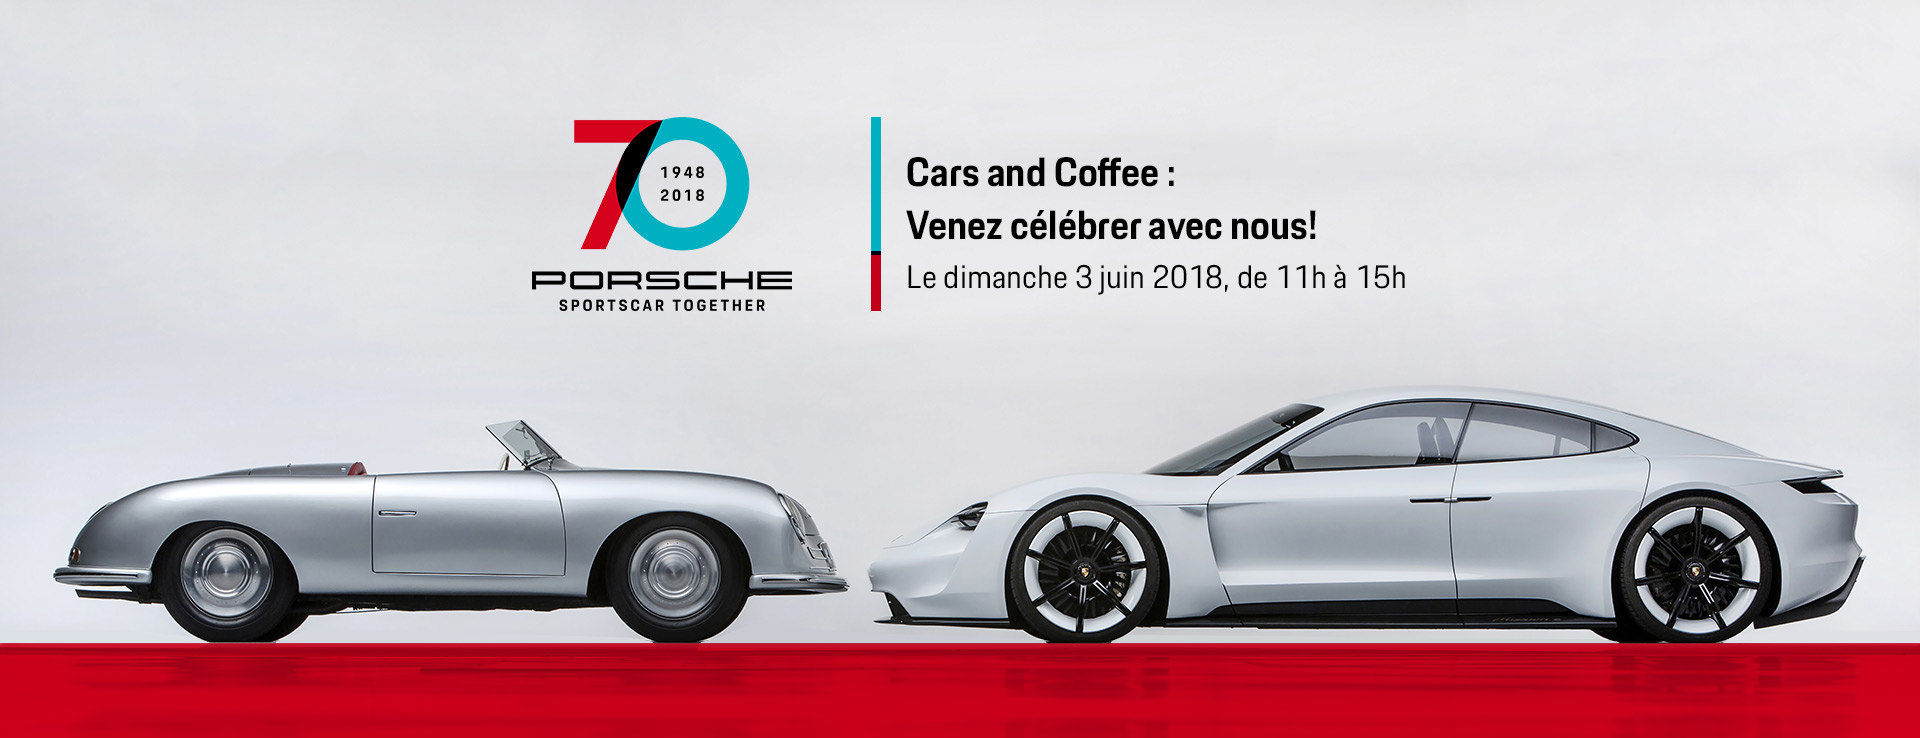 Cars & Coffee Sportscar Together Day - Les Classiques